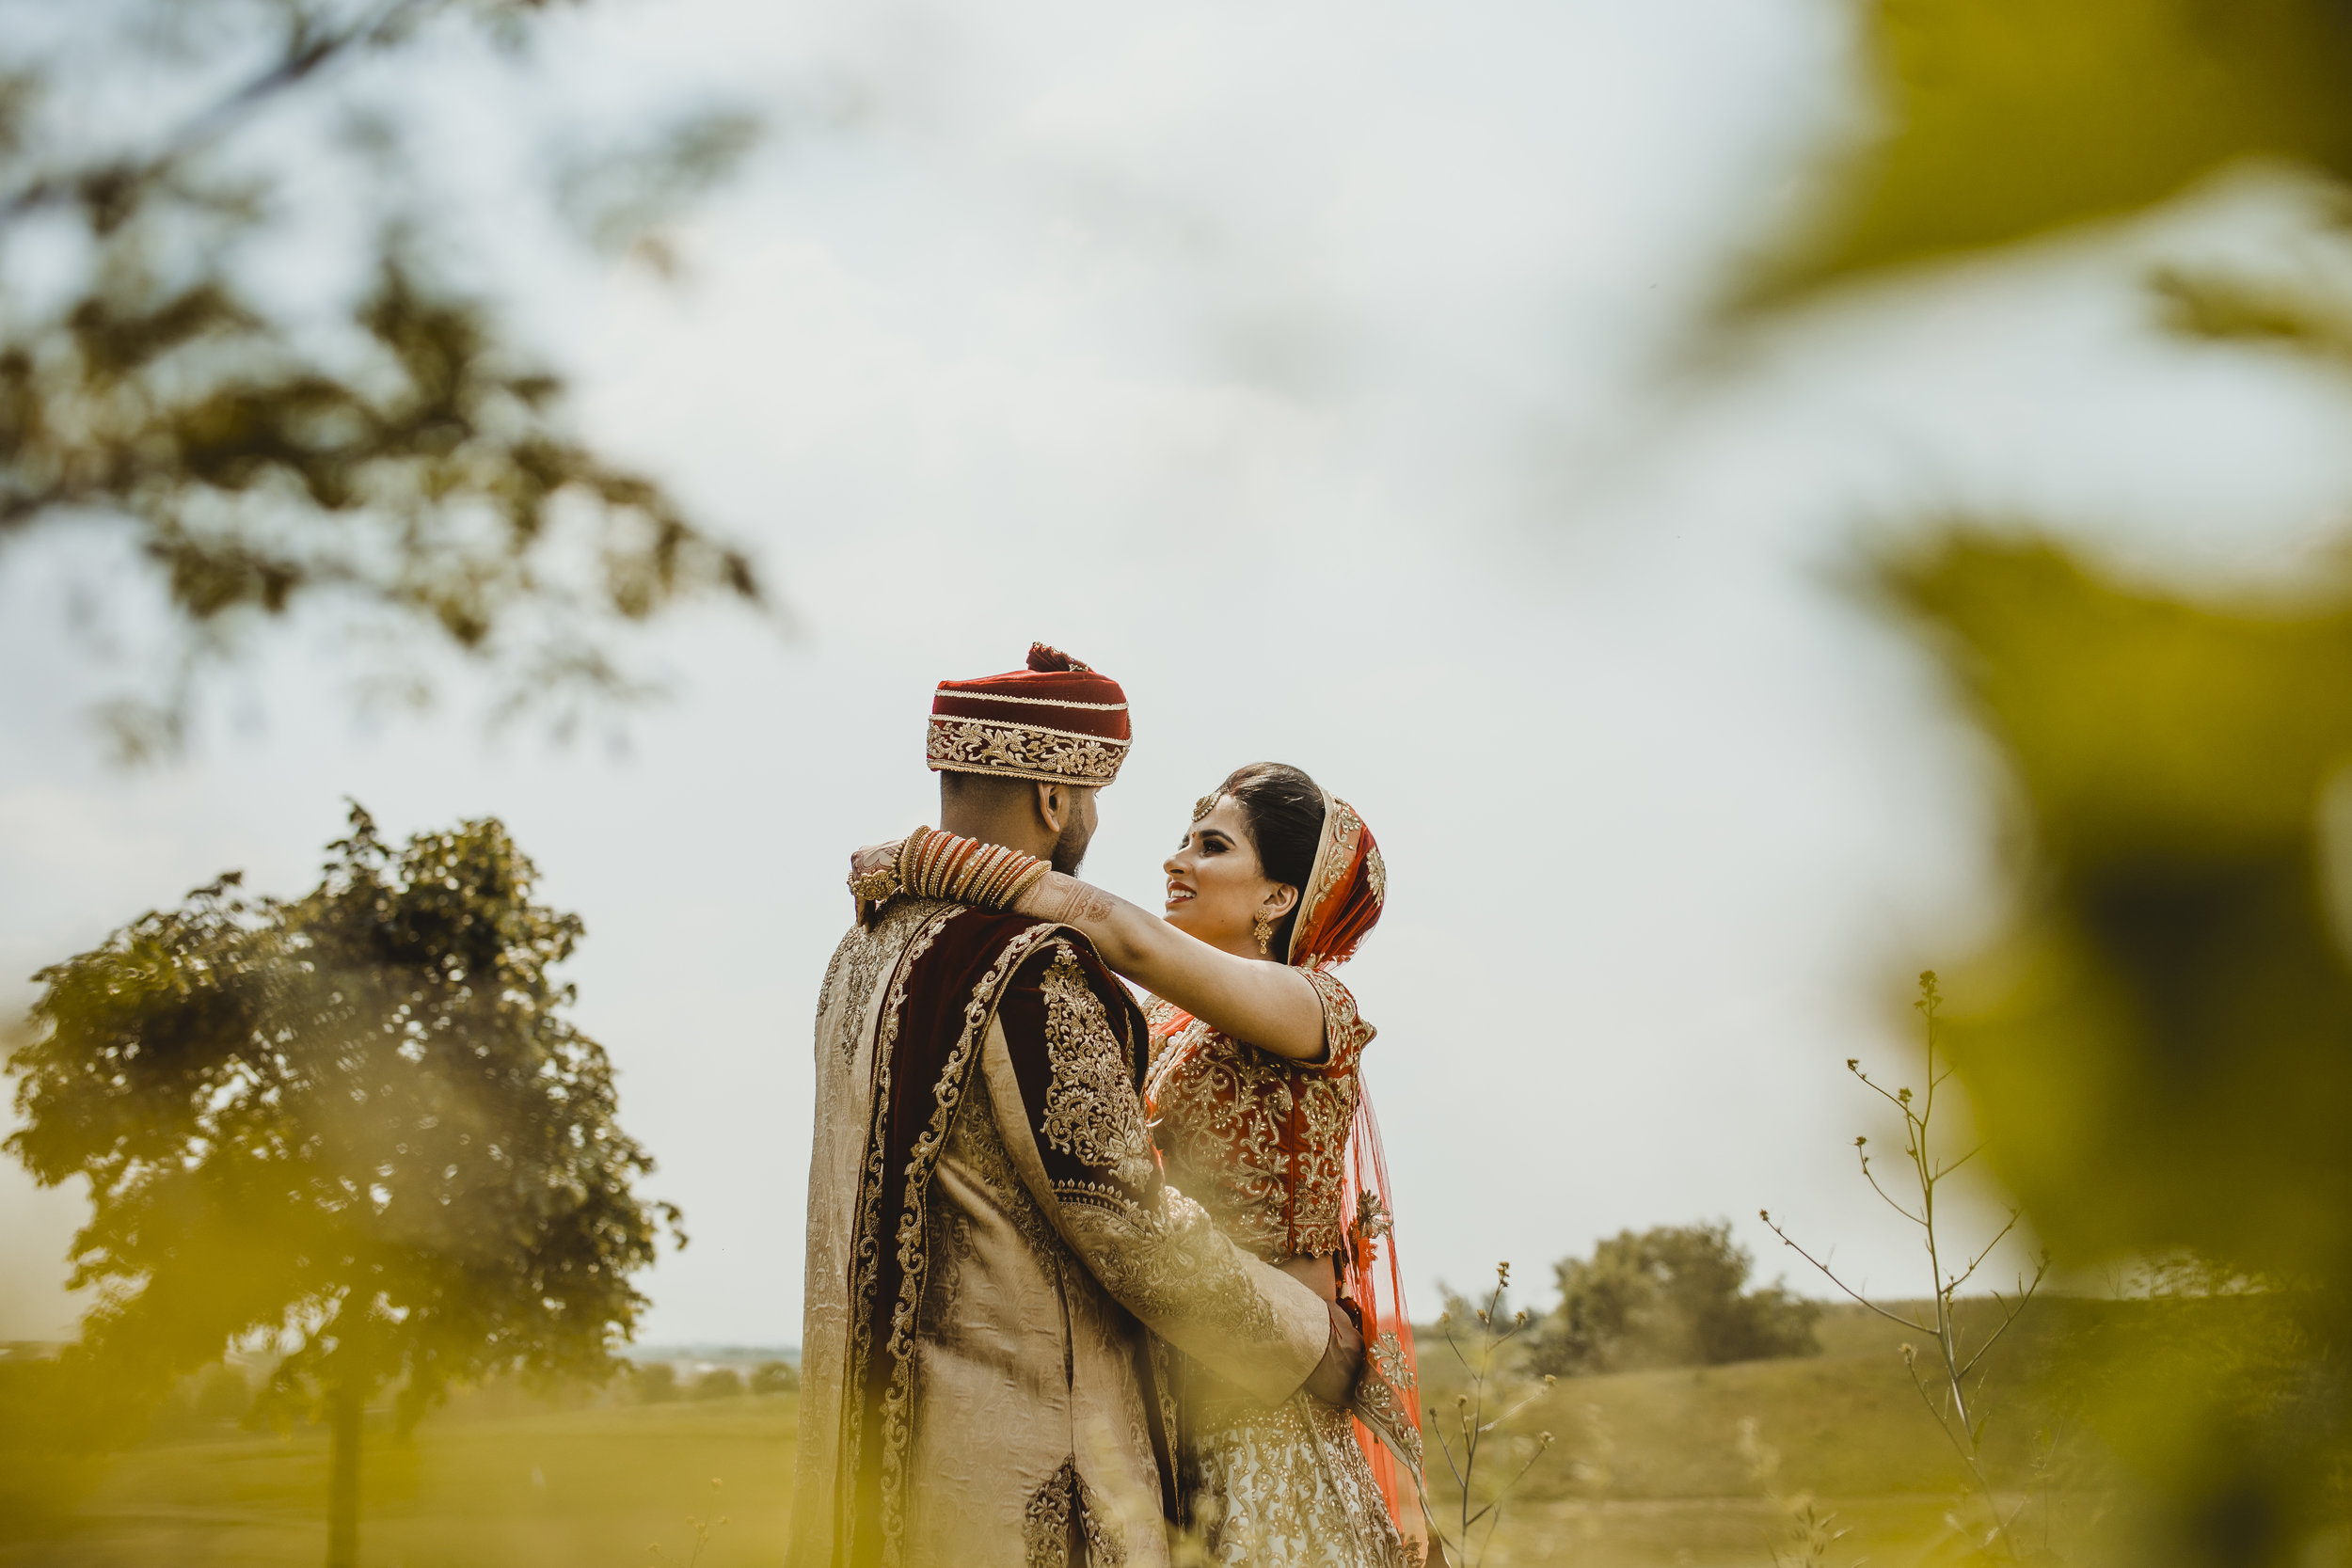 N&J_MILTON_KEYNES_WEDDING_LONDON_PHOTOGRAPHER_ASIAN_WEDDING-804.JPG